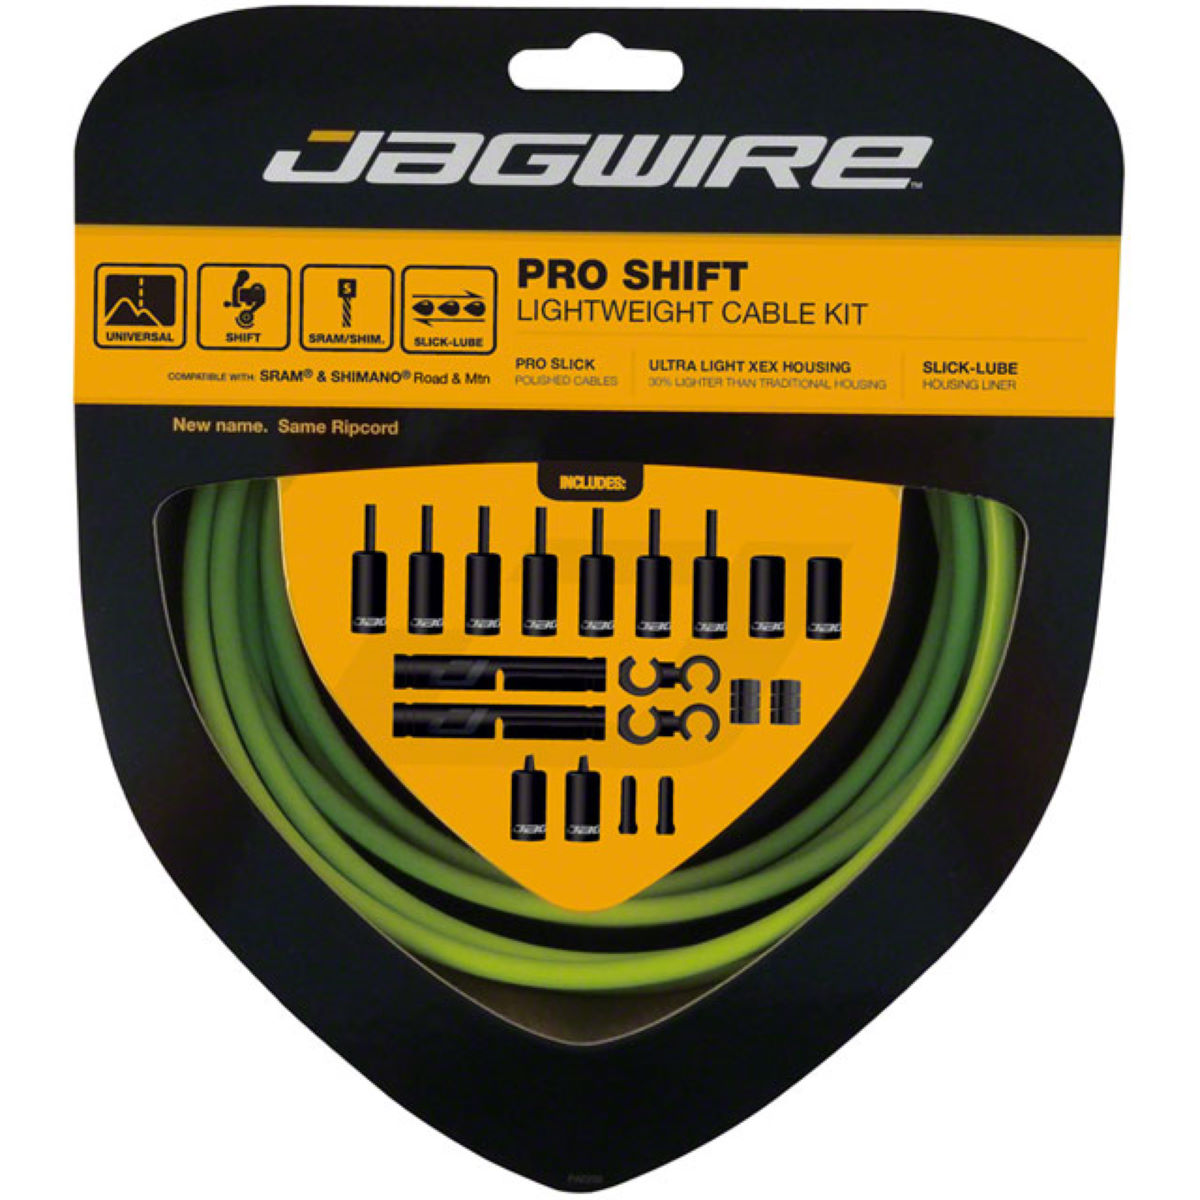 Jagwire Pro Shift Kit Gear Cables